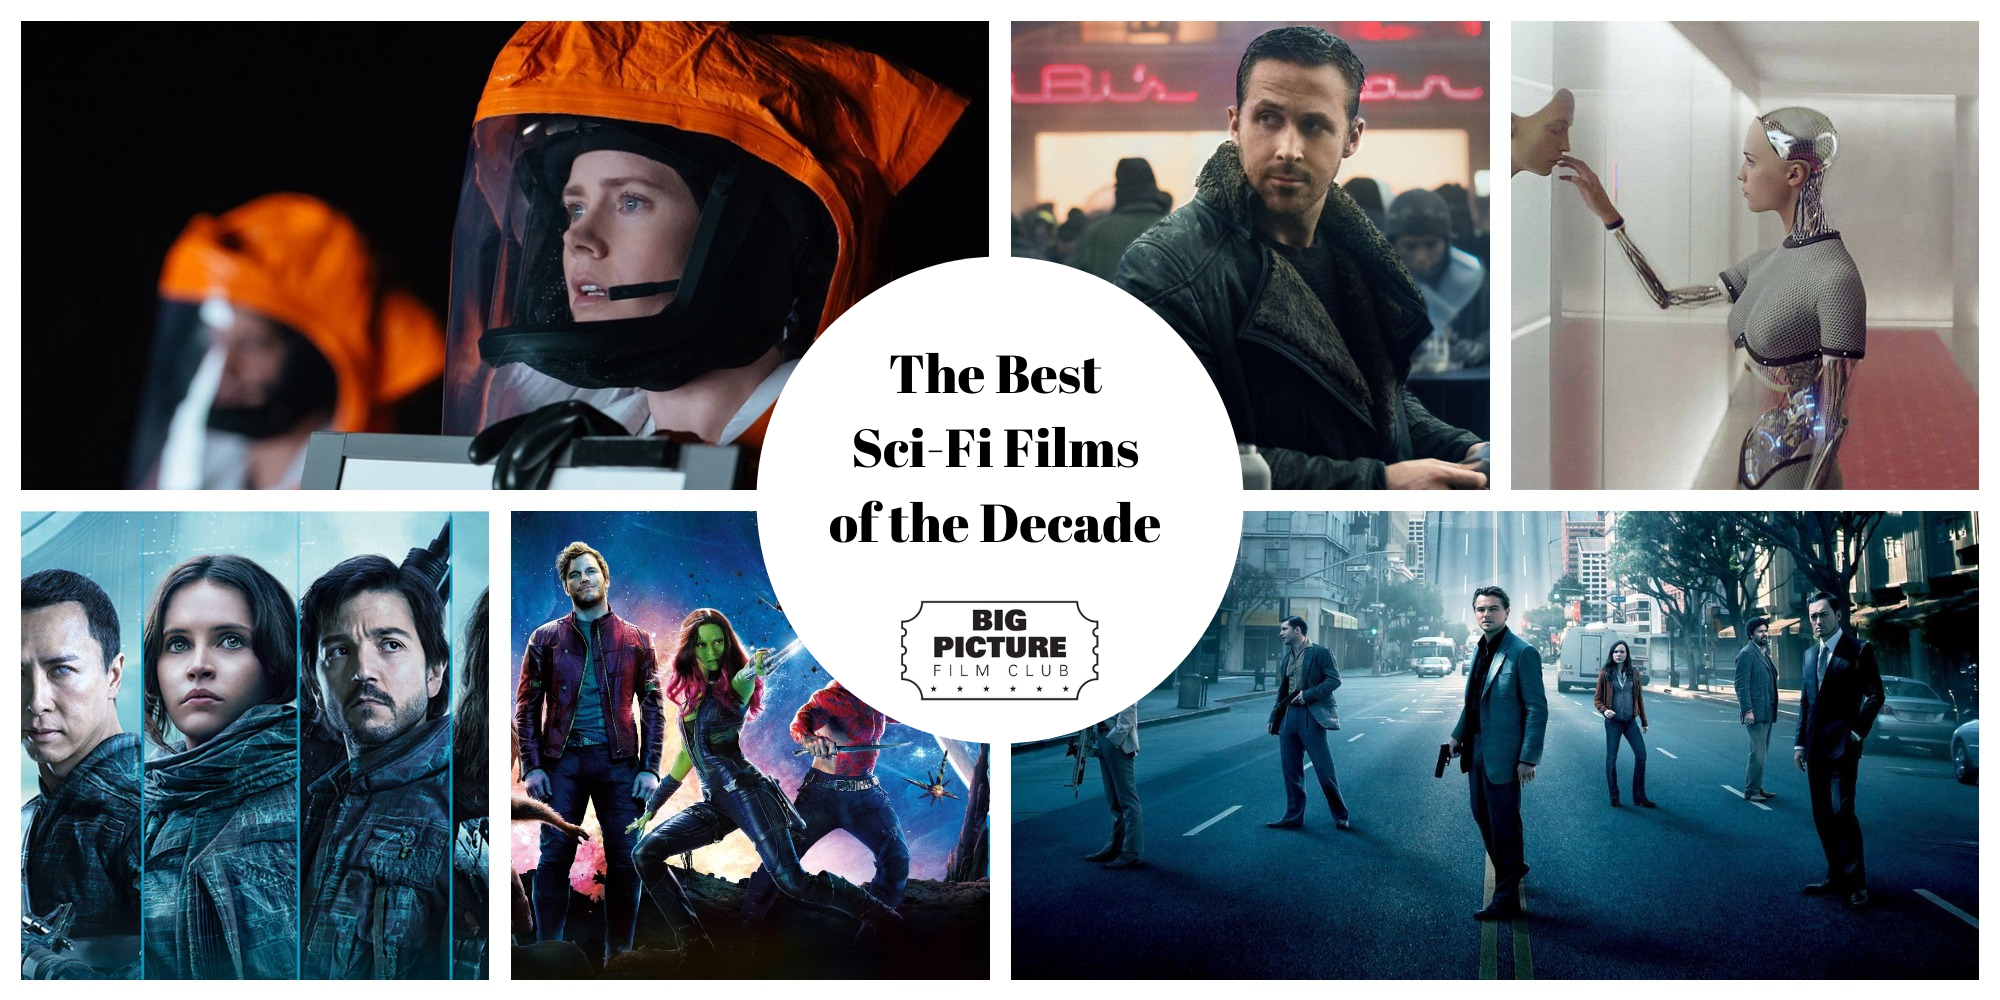 Best Sci-Fi Films of the Decade